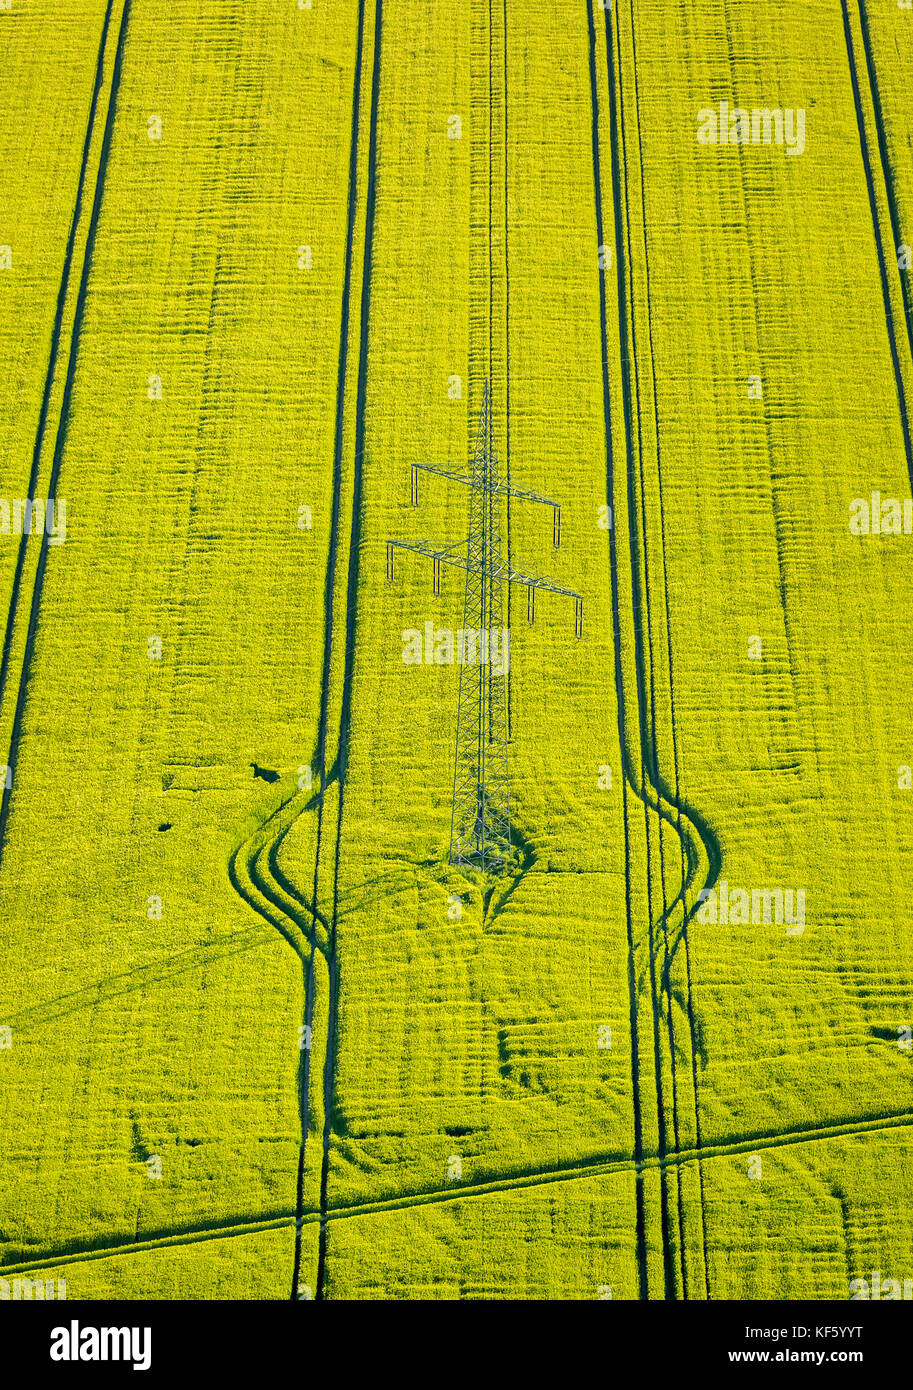 yellow flowering rapeseed field with tractor tracks and Pylon, electric transmission line, Werne, Ruhr, Nordrhein - Stock Image